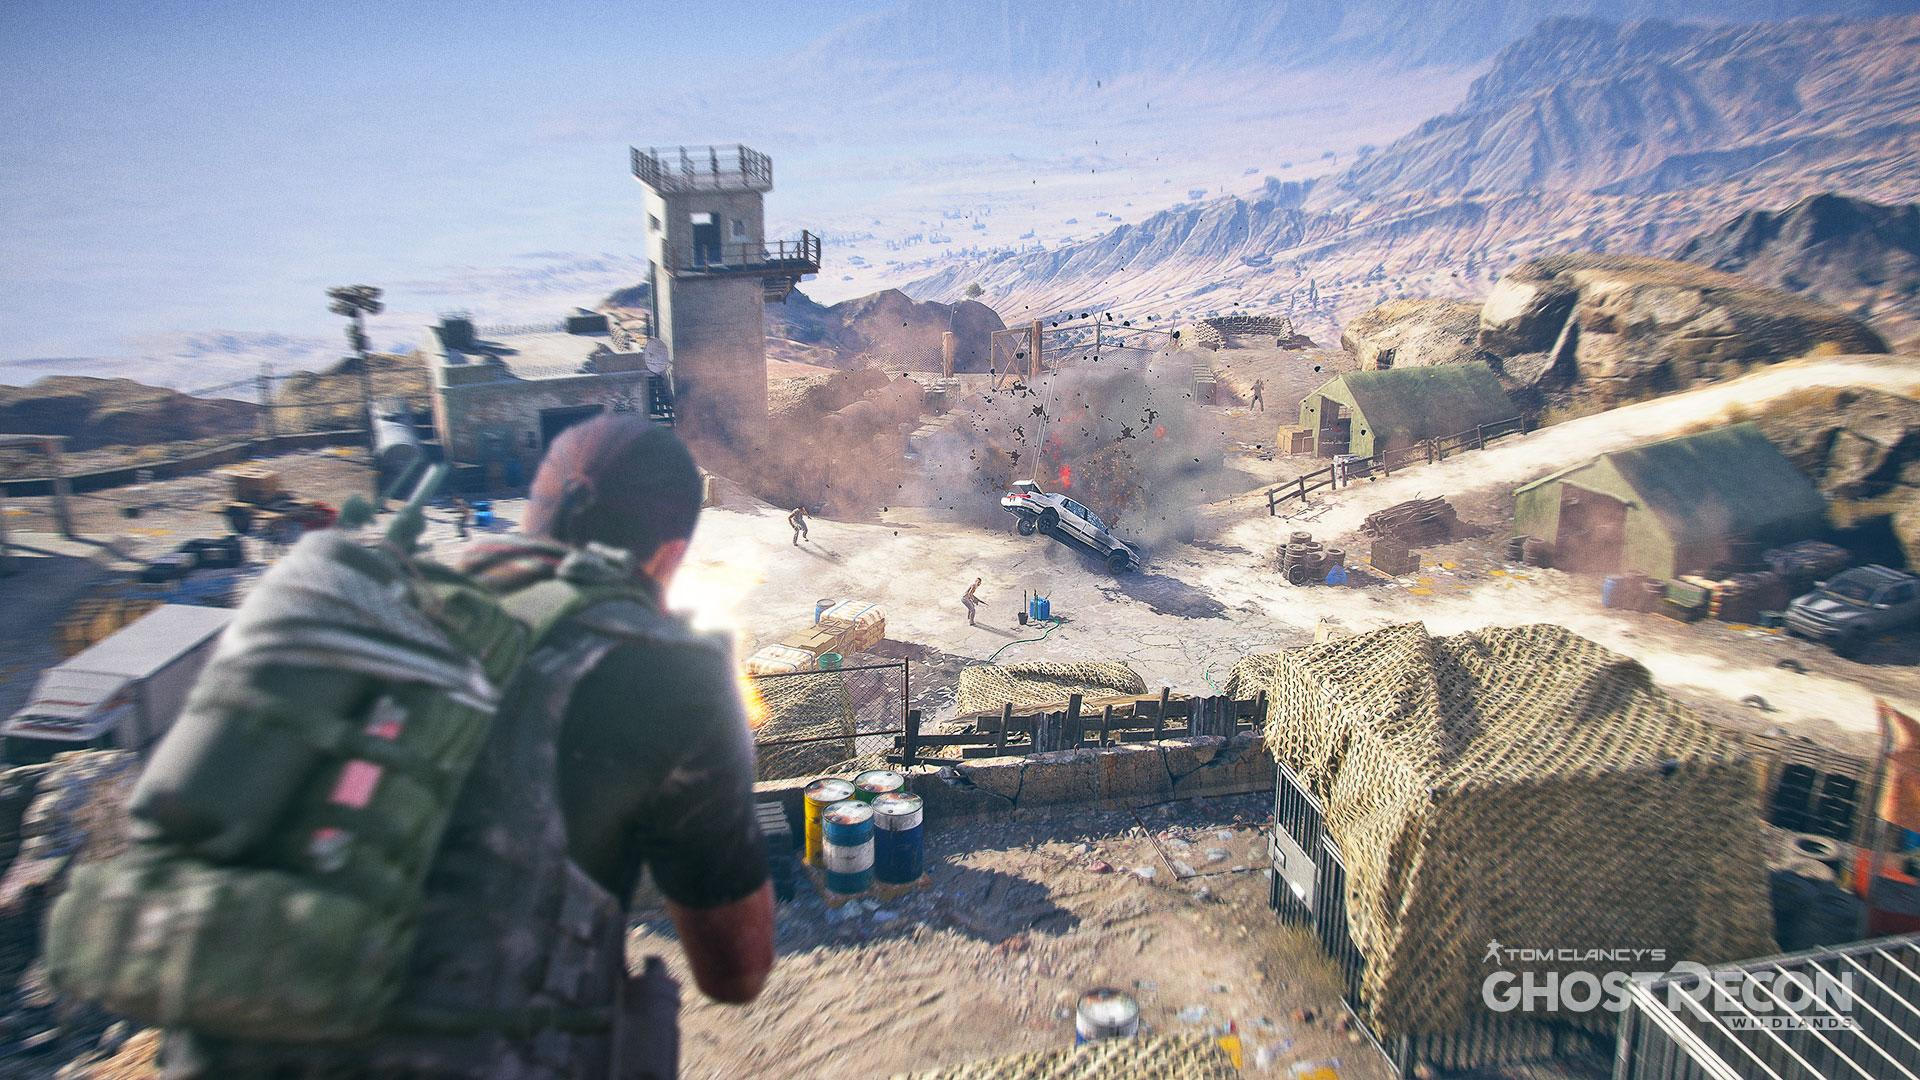 Ghost Recon Wildlands 40 Season Pass Packs Two Big Expansions